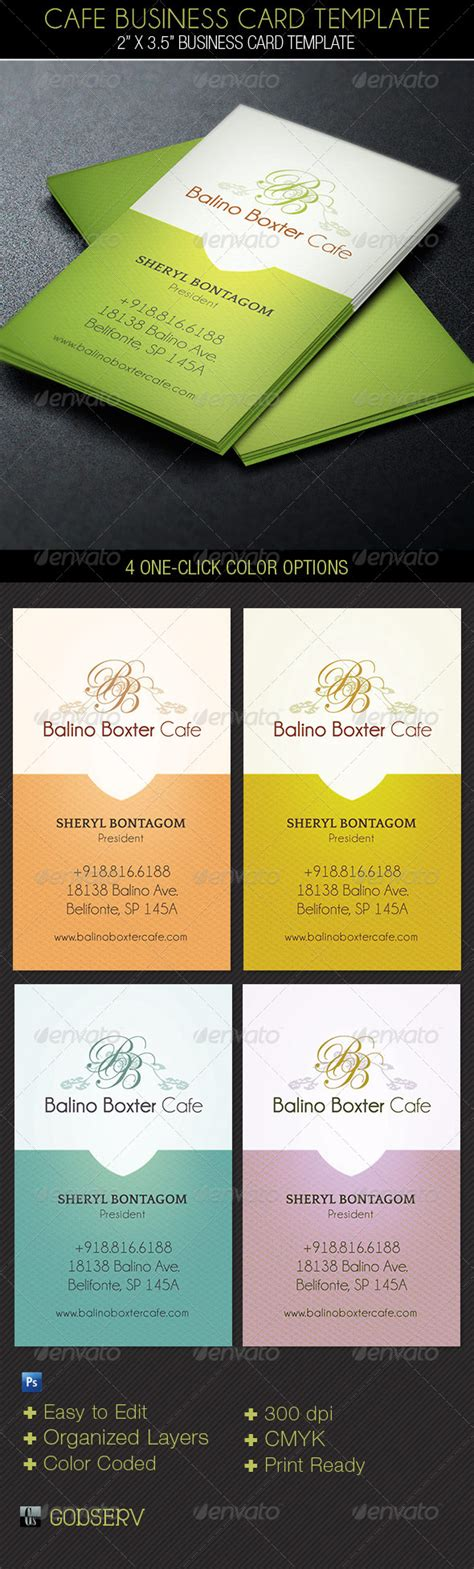 cafe business card template cafe business card template industry specific business cards